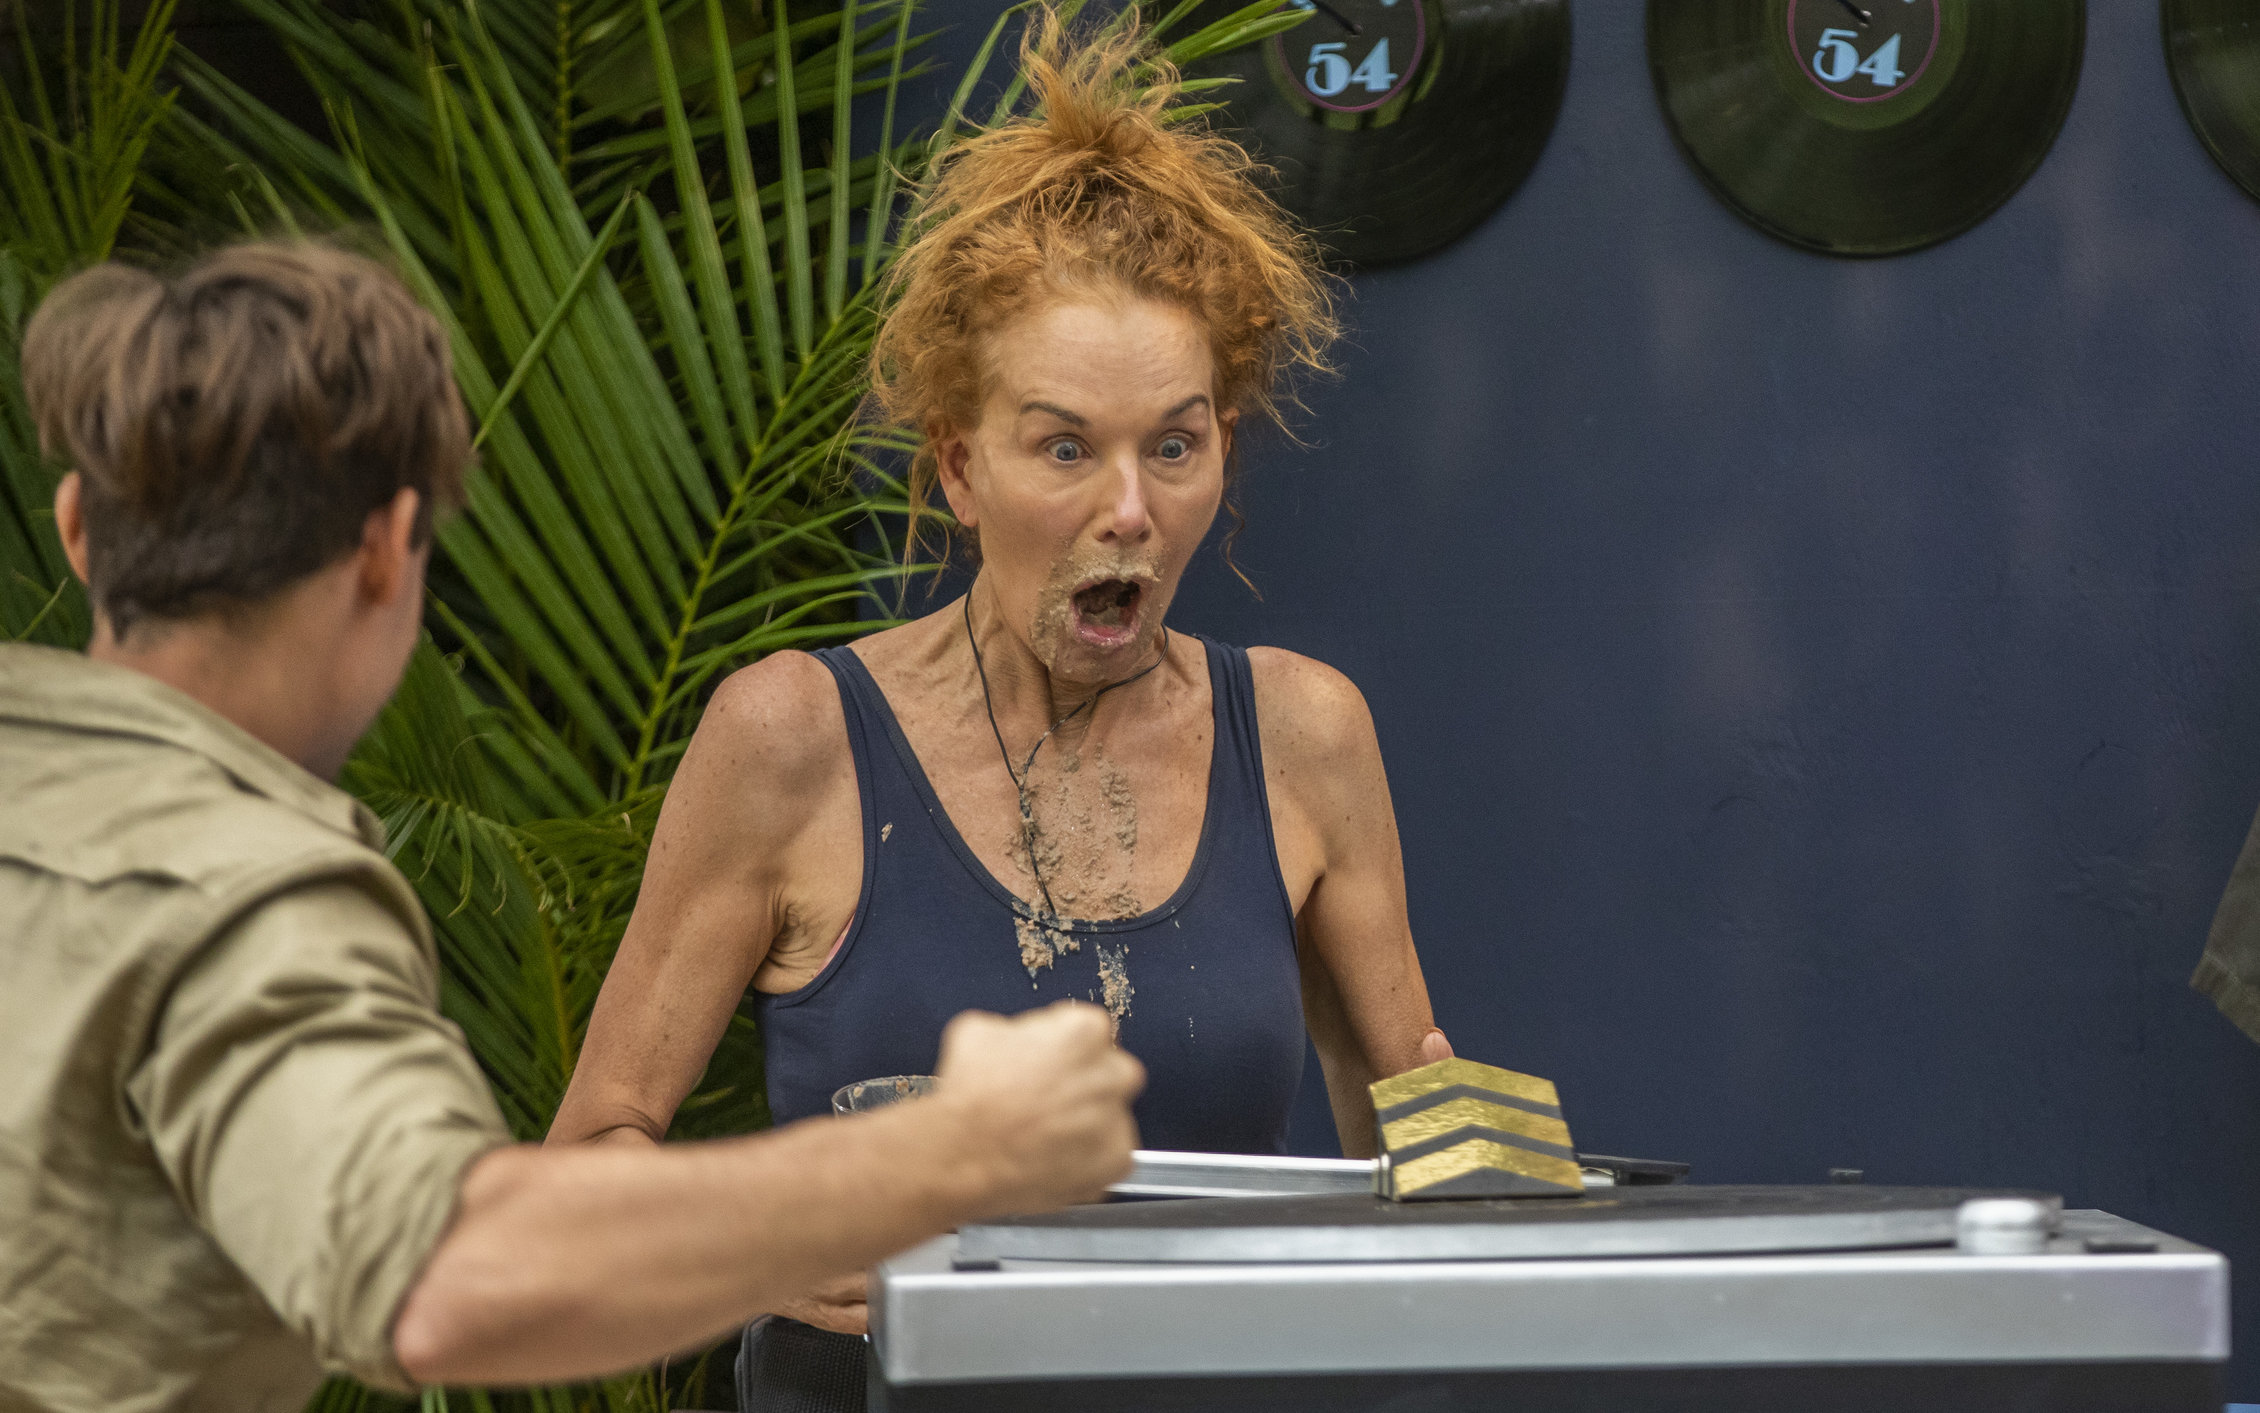 Candid Conversations Arose On I'm A Celebrity…Get Me Out Of Here!